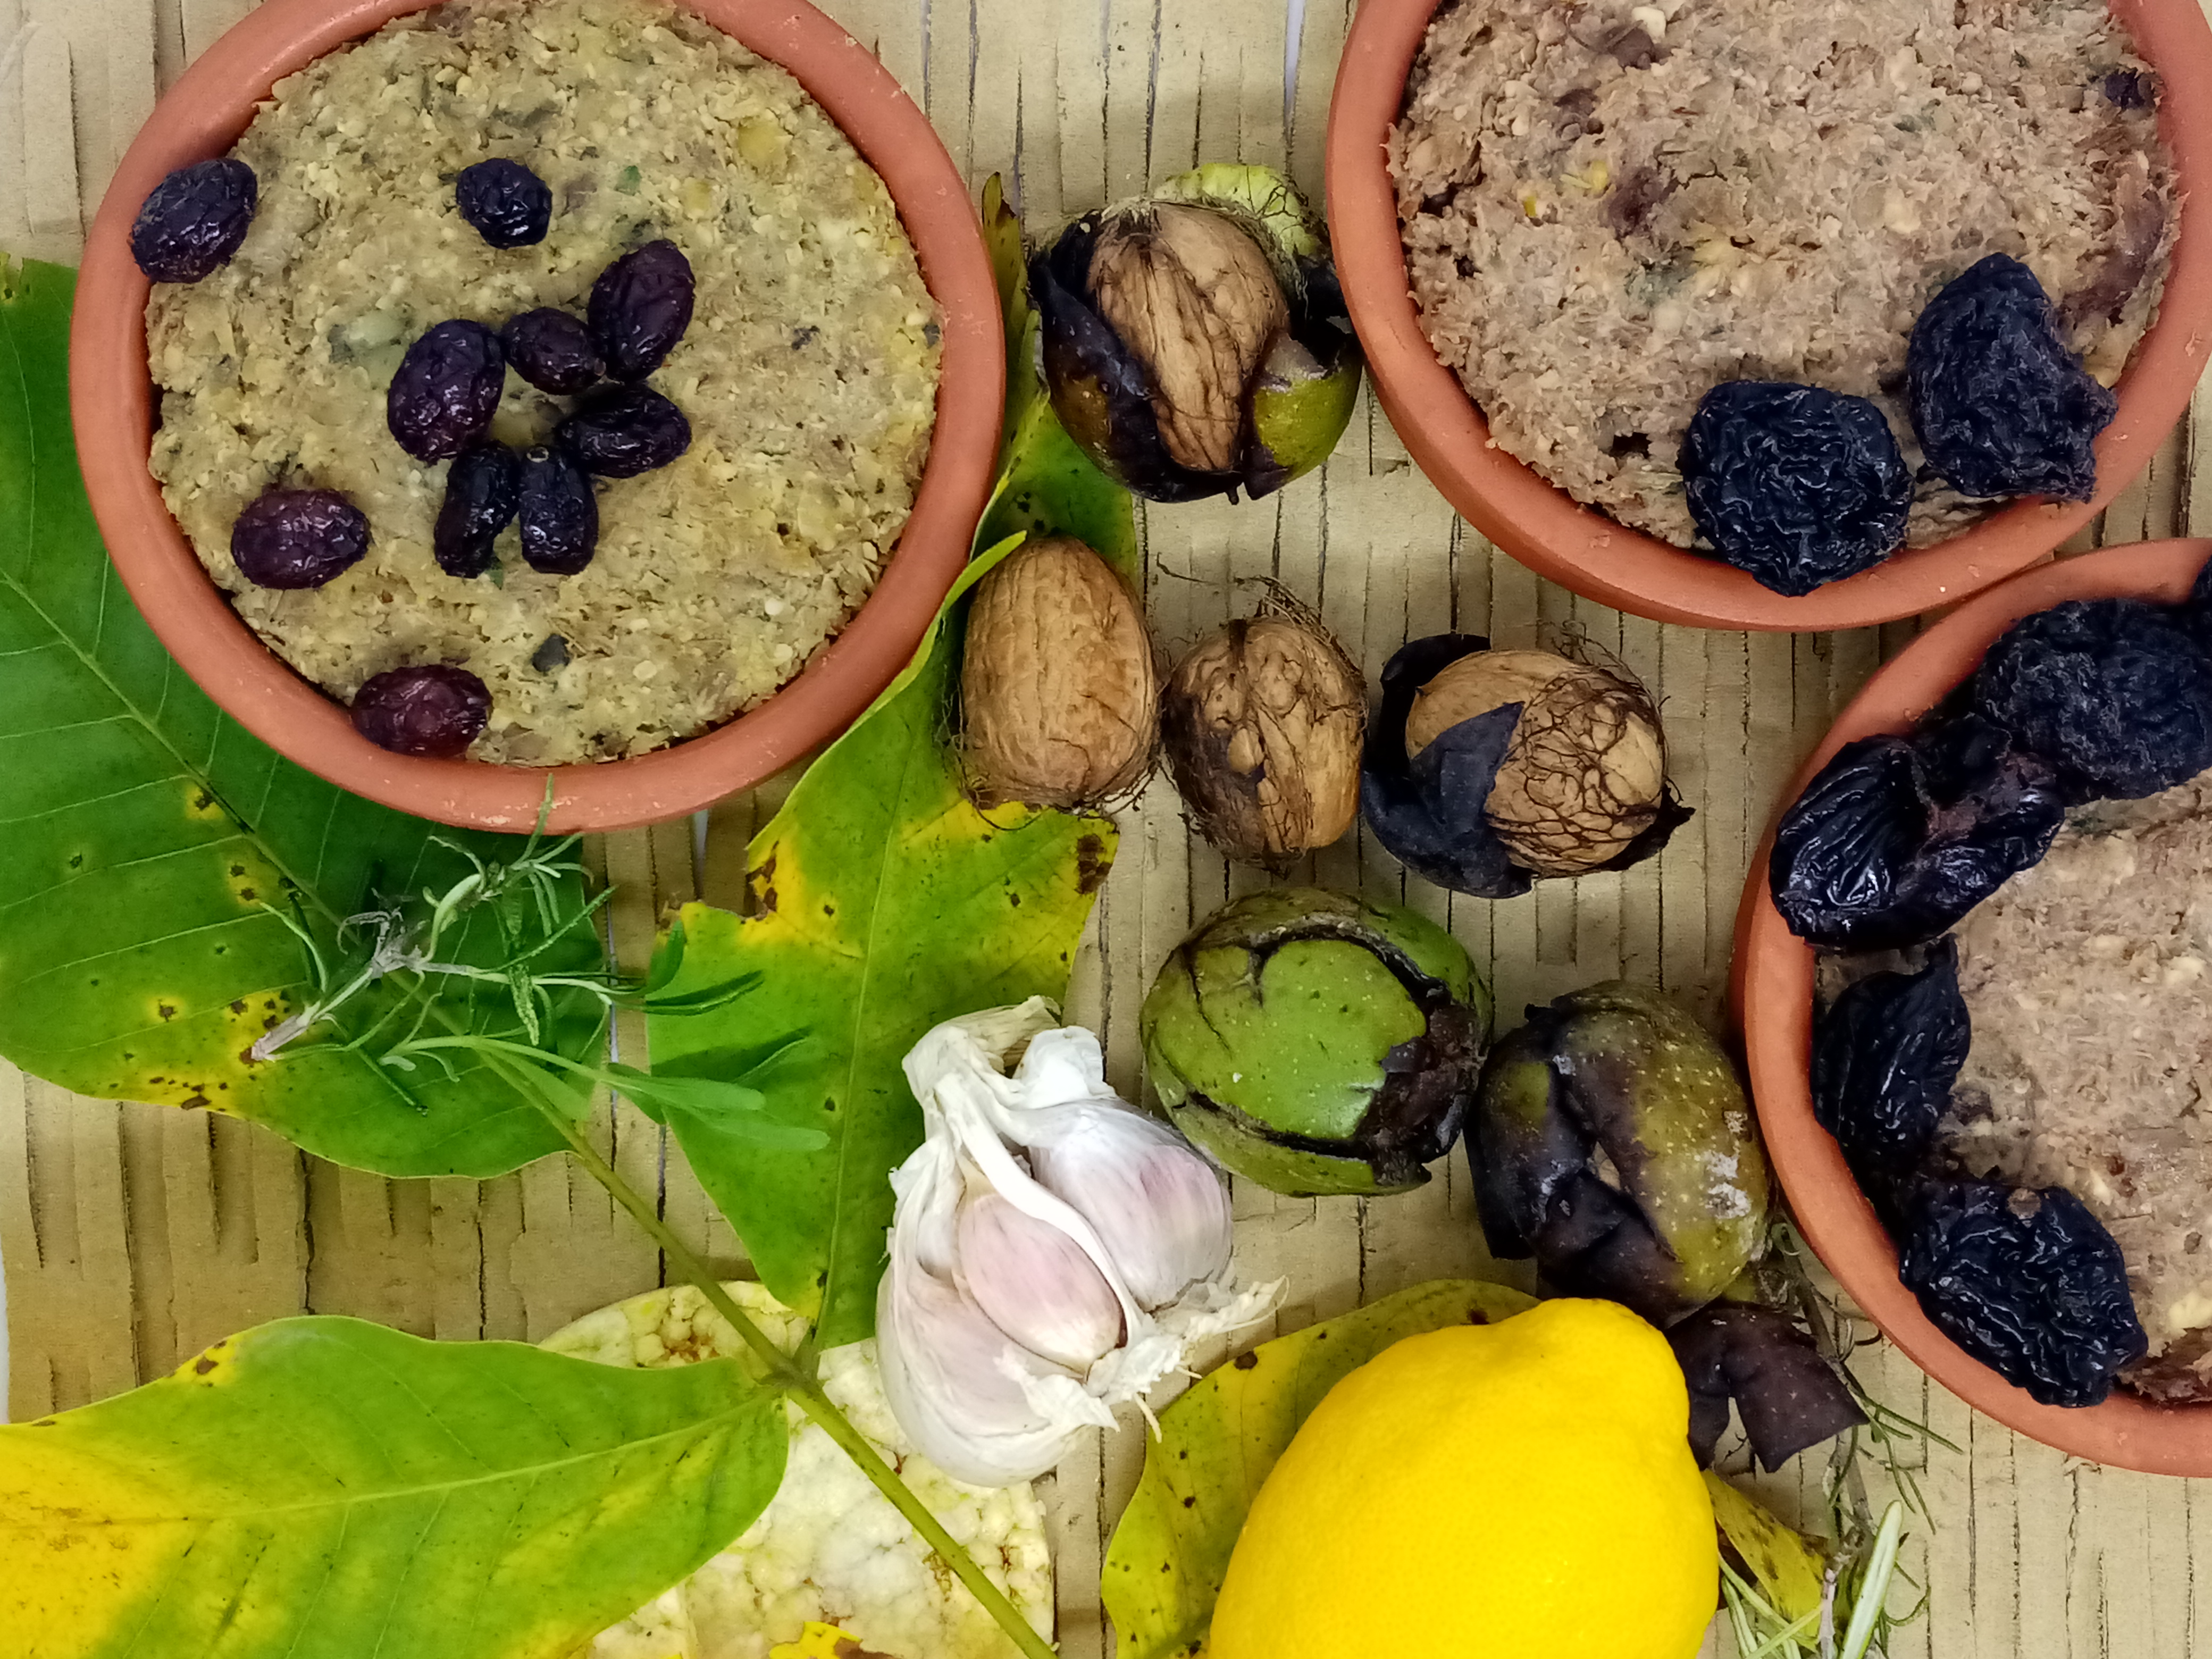 apetizers in clay bowls on a table decorated with tree leaves, whole walnuts, lemon and garlic cloves